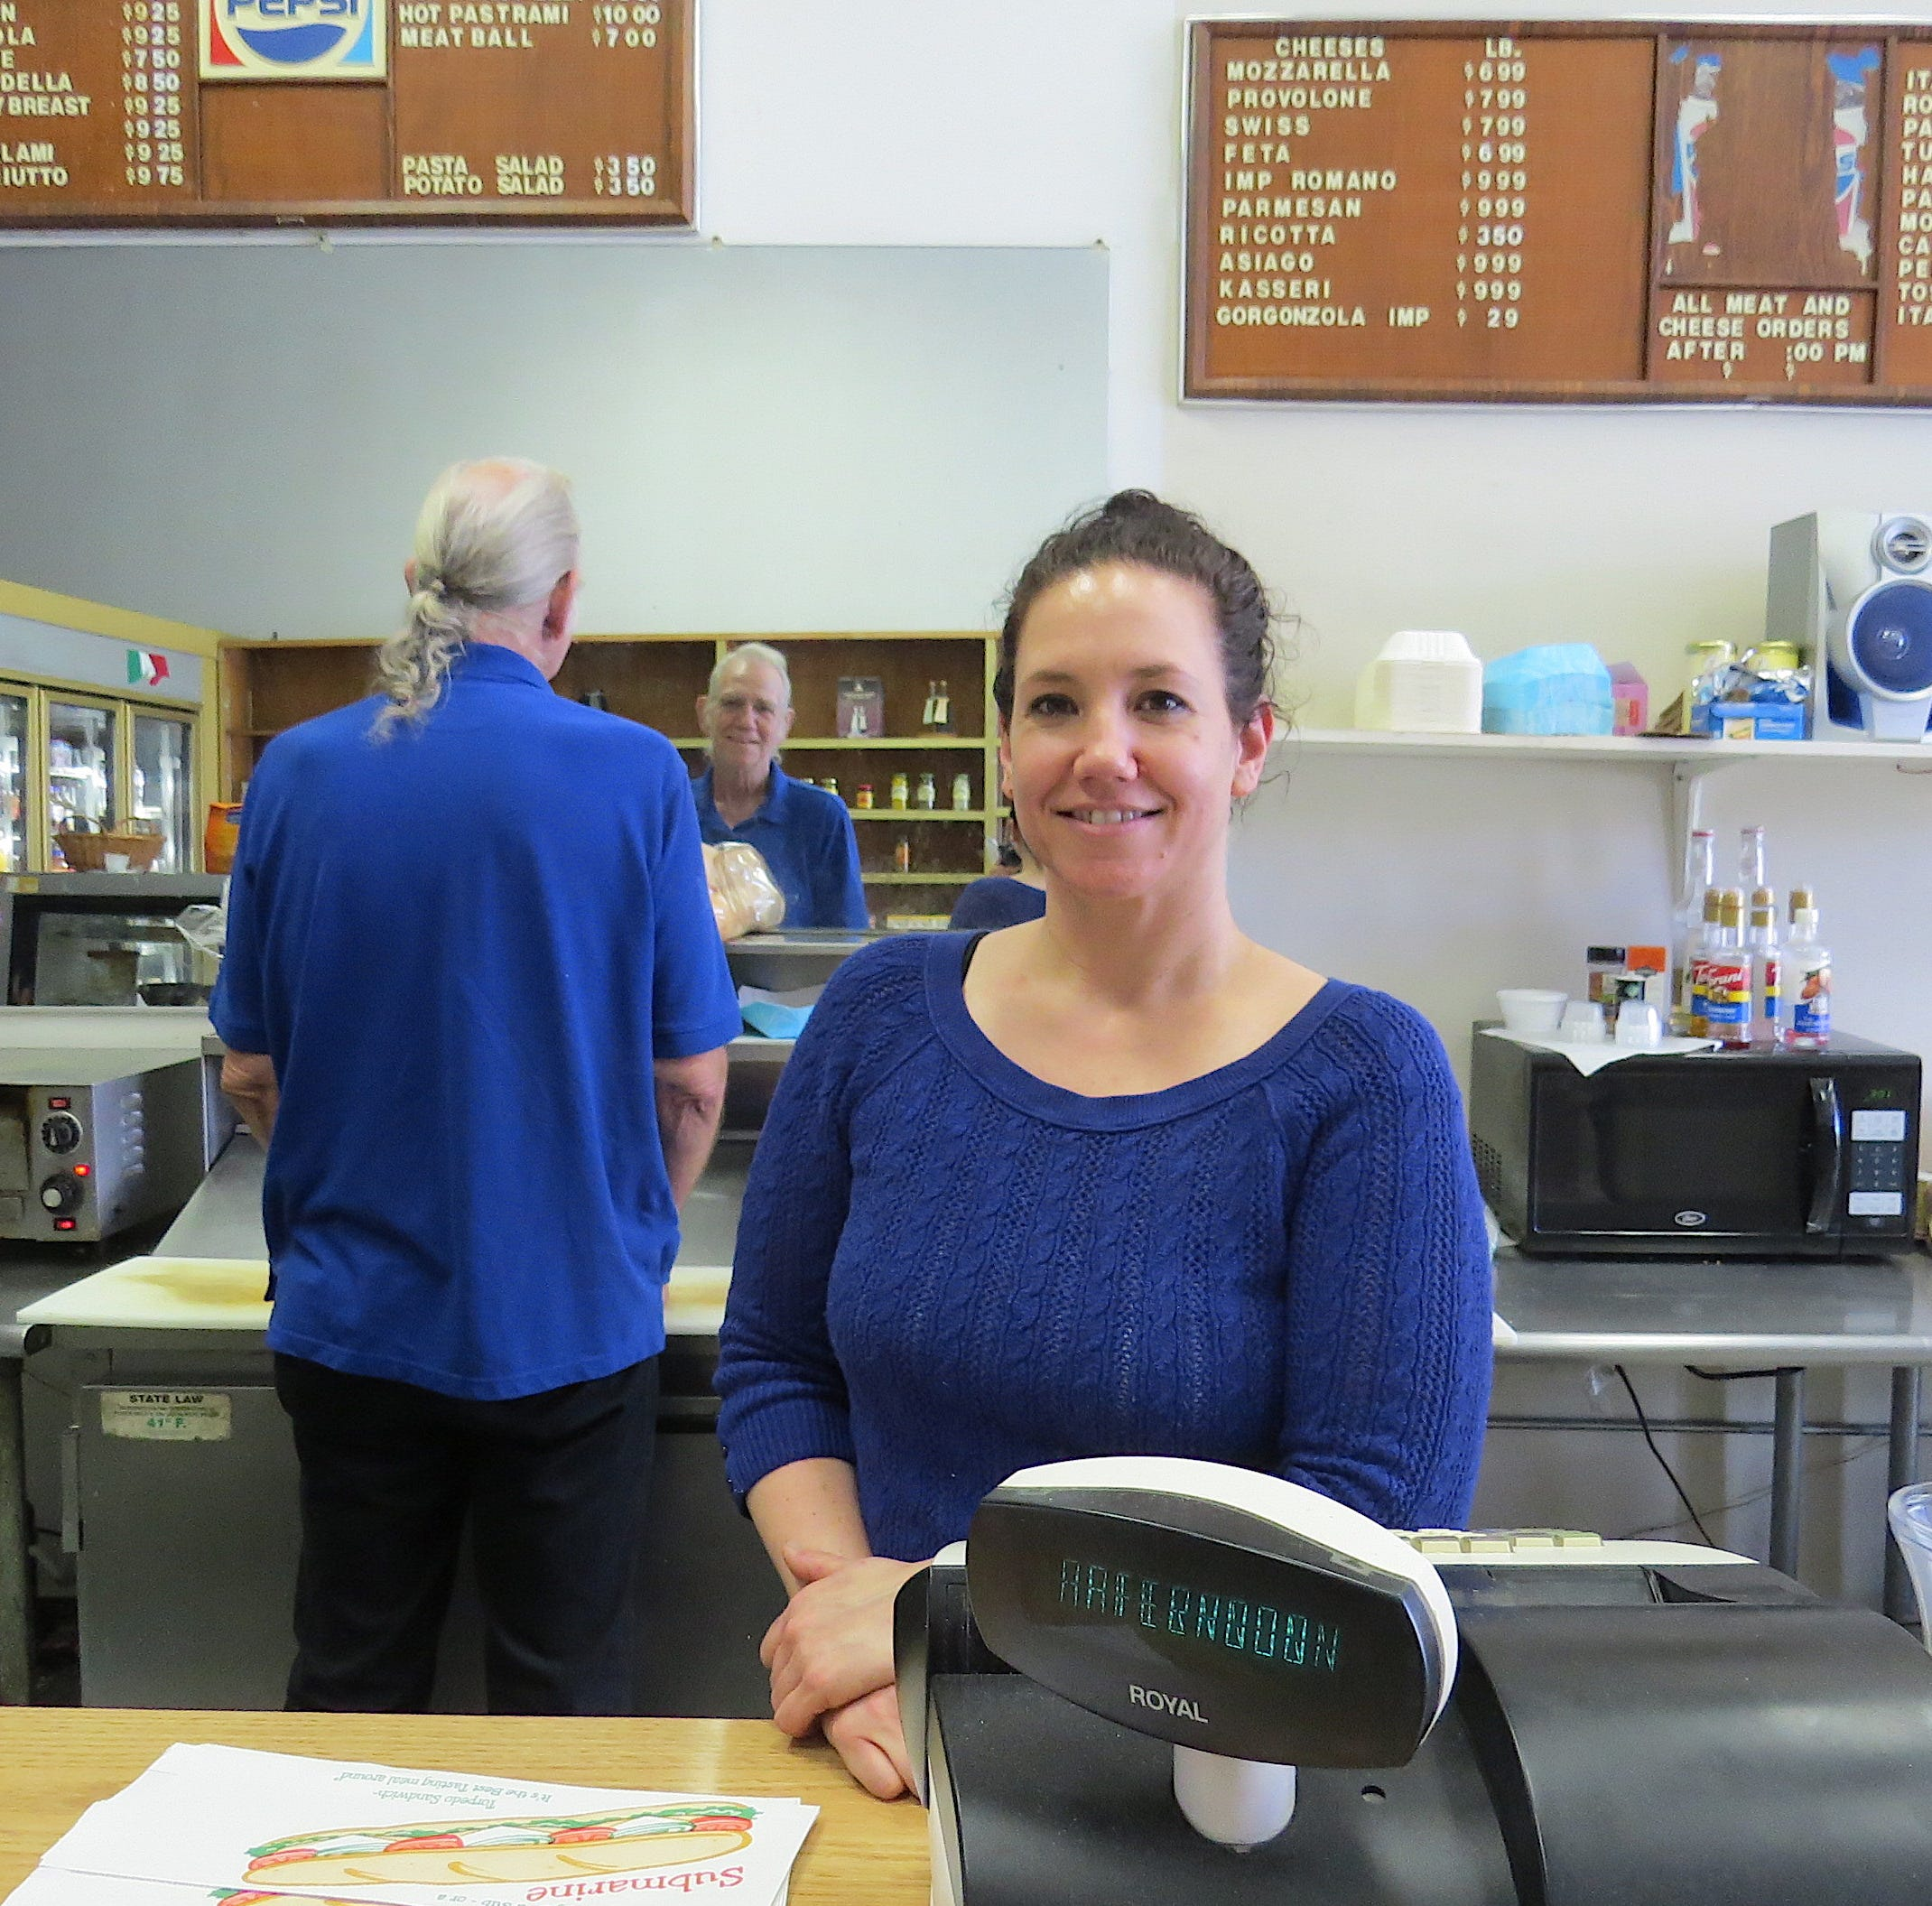 Cafe Society: Service with a smile as daughter takes reins at Ventura's Italian grocery